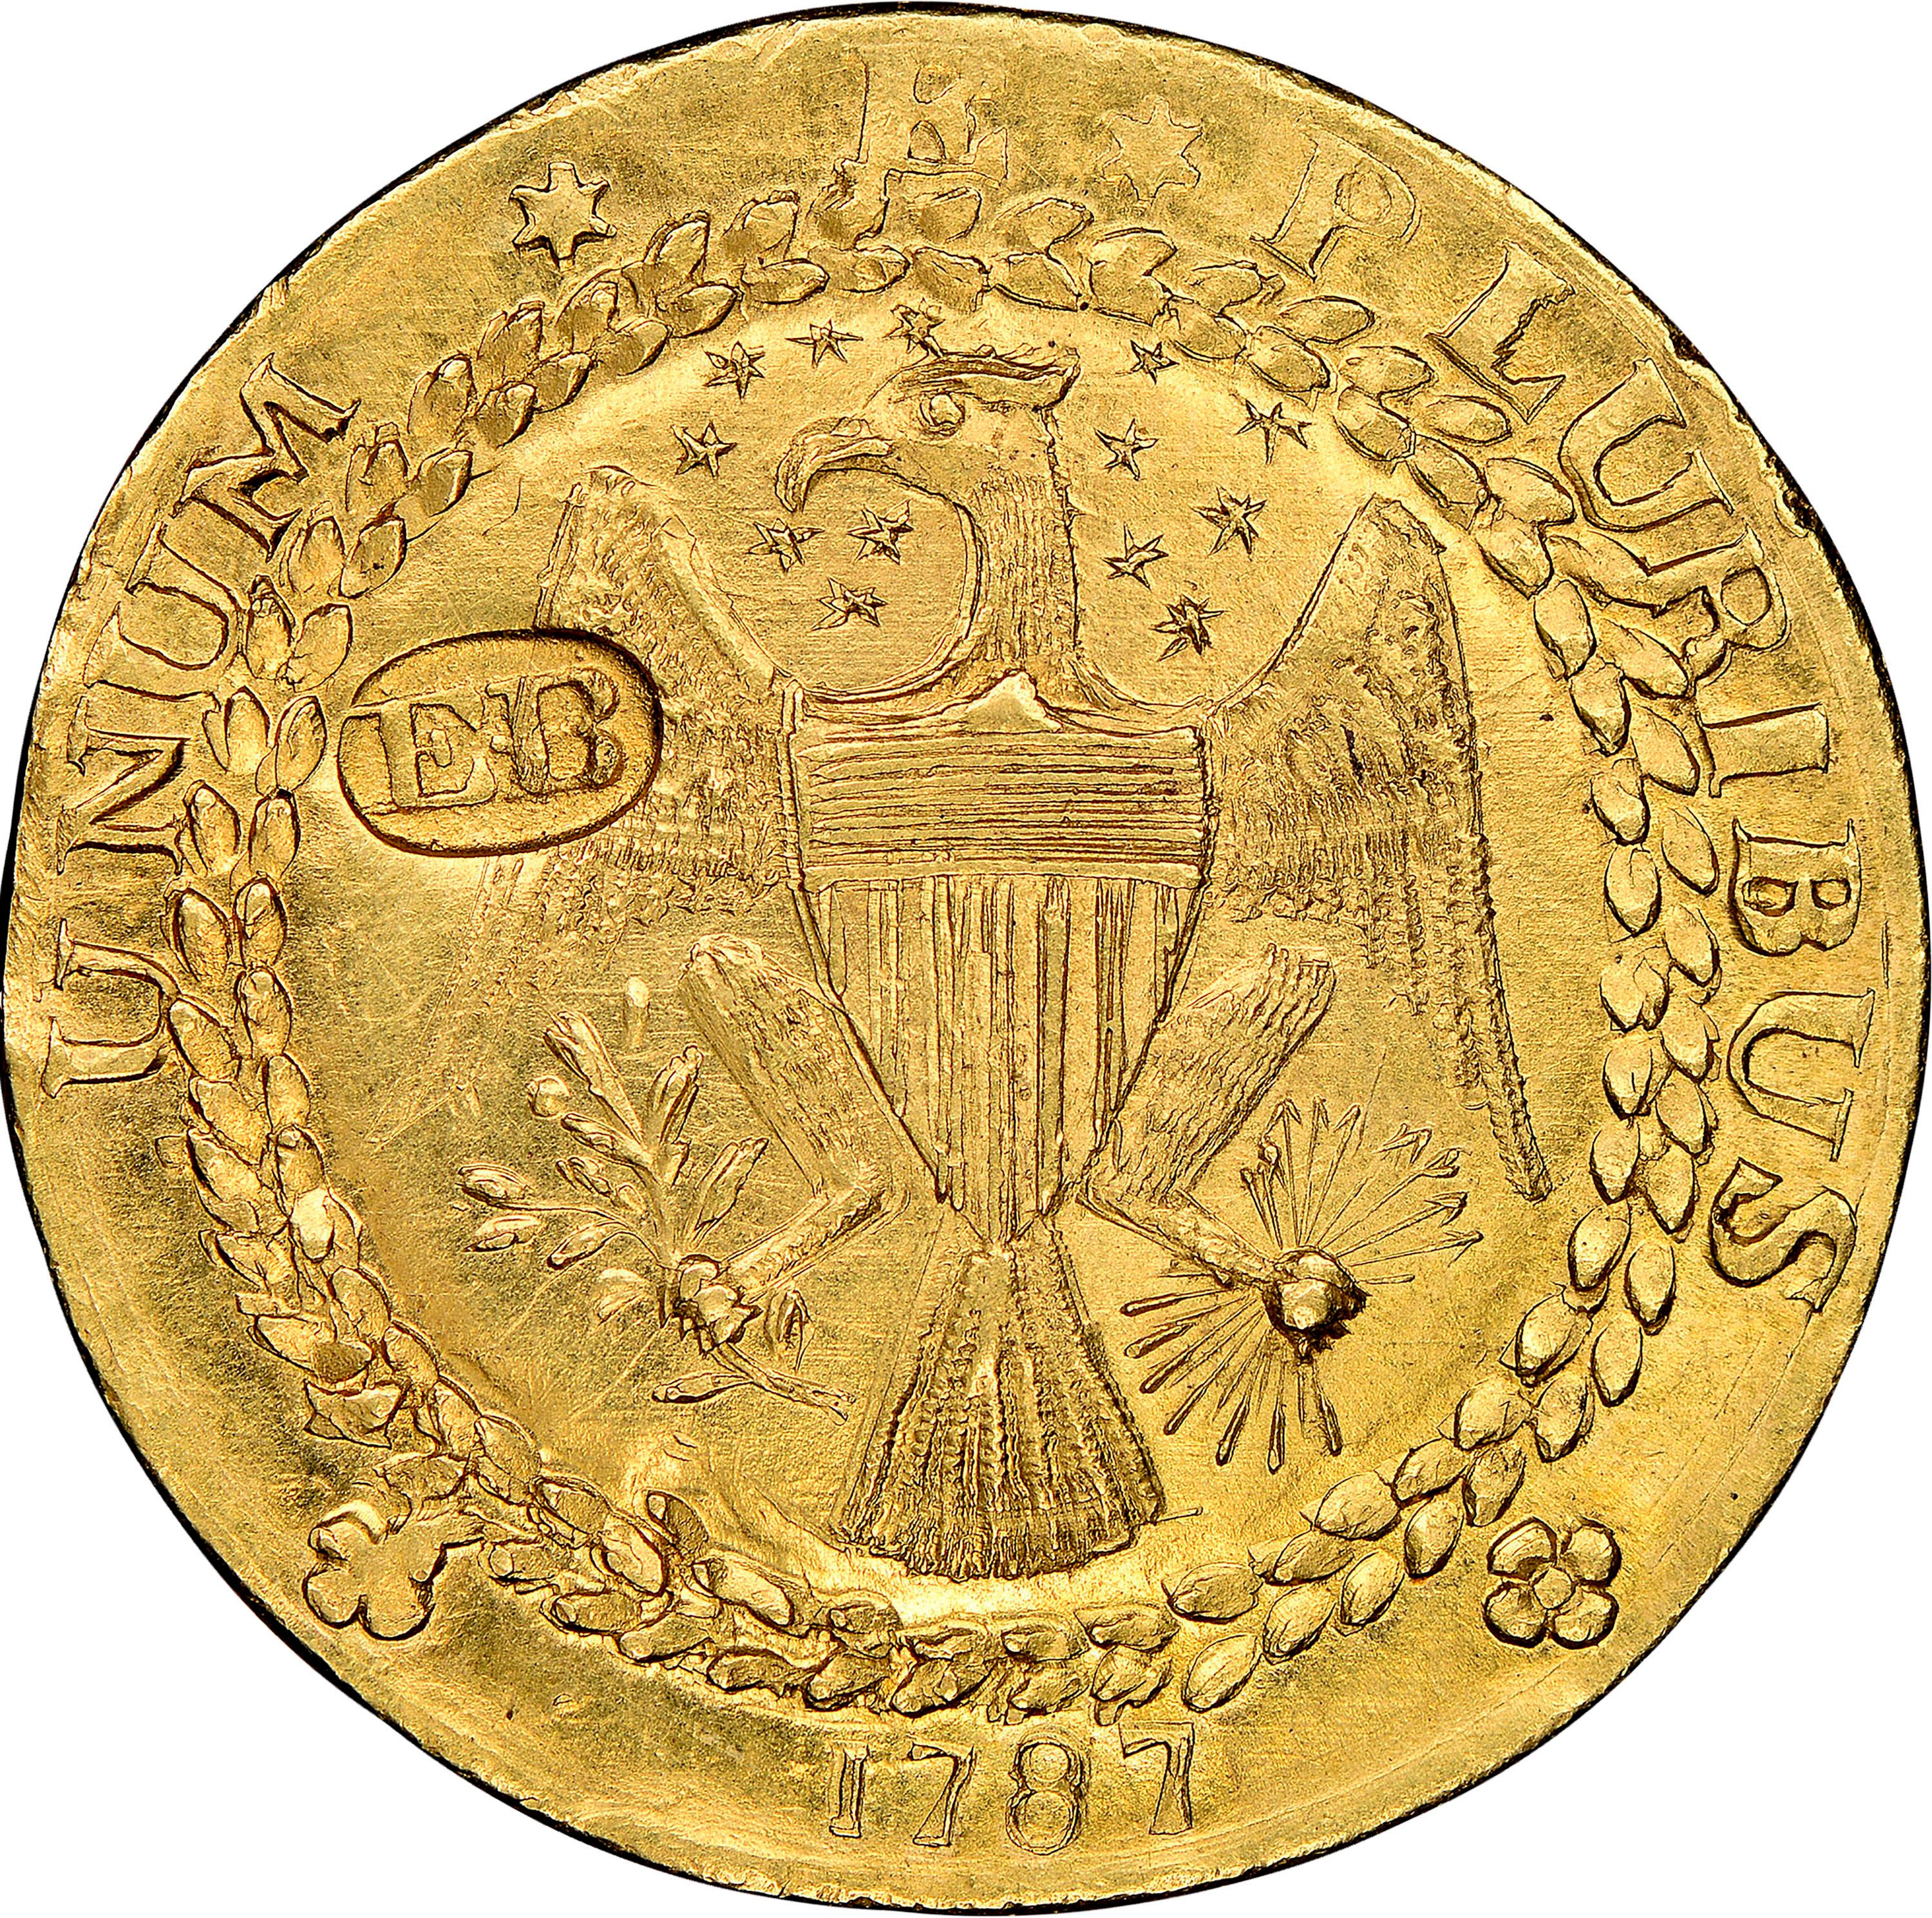 Rare US gold coin dating from 1787 sold for 9m dollars